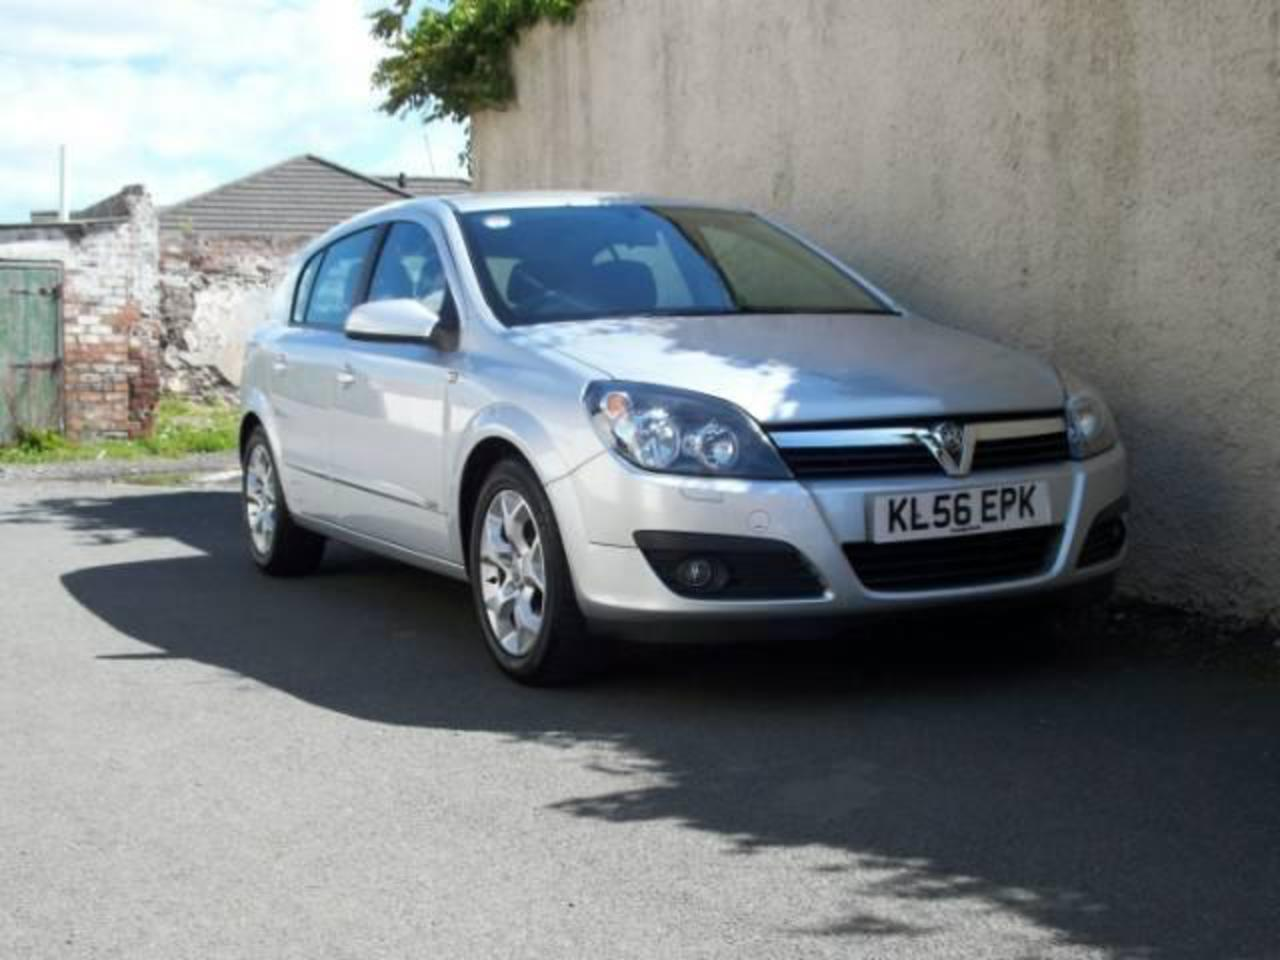 Opel Astra 17i Hatch. View Download Wallpaper. 640x480. Comments